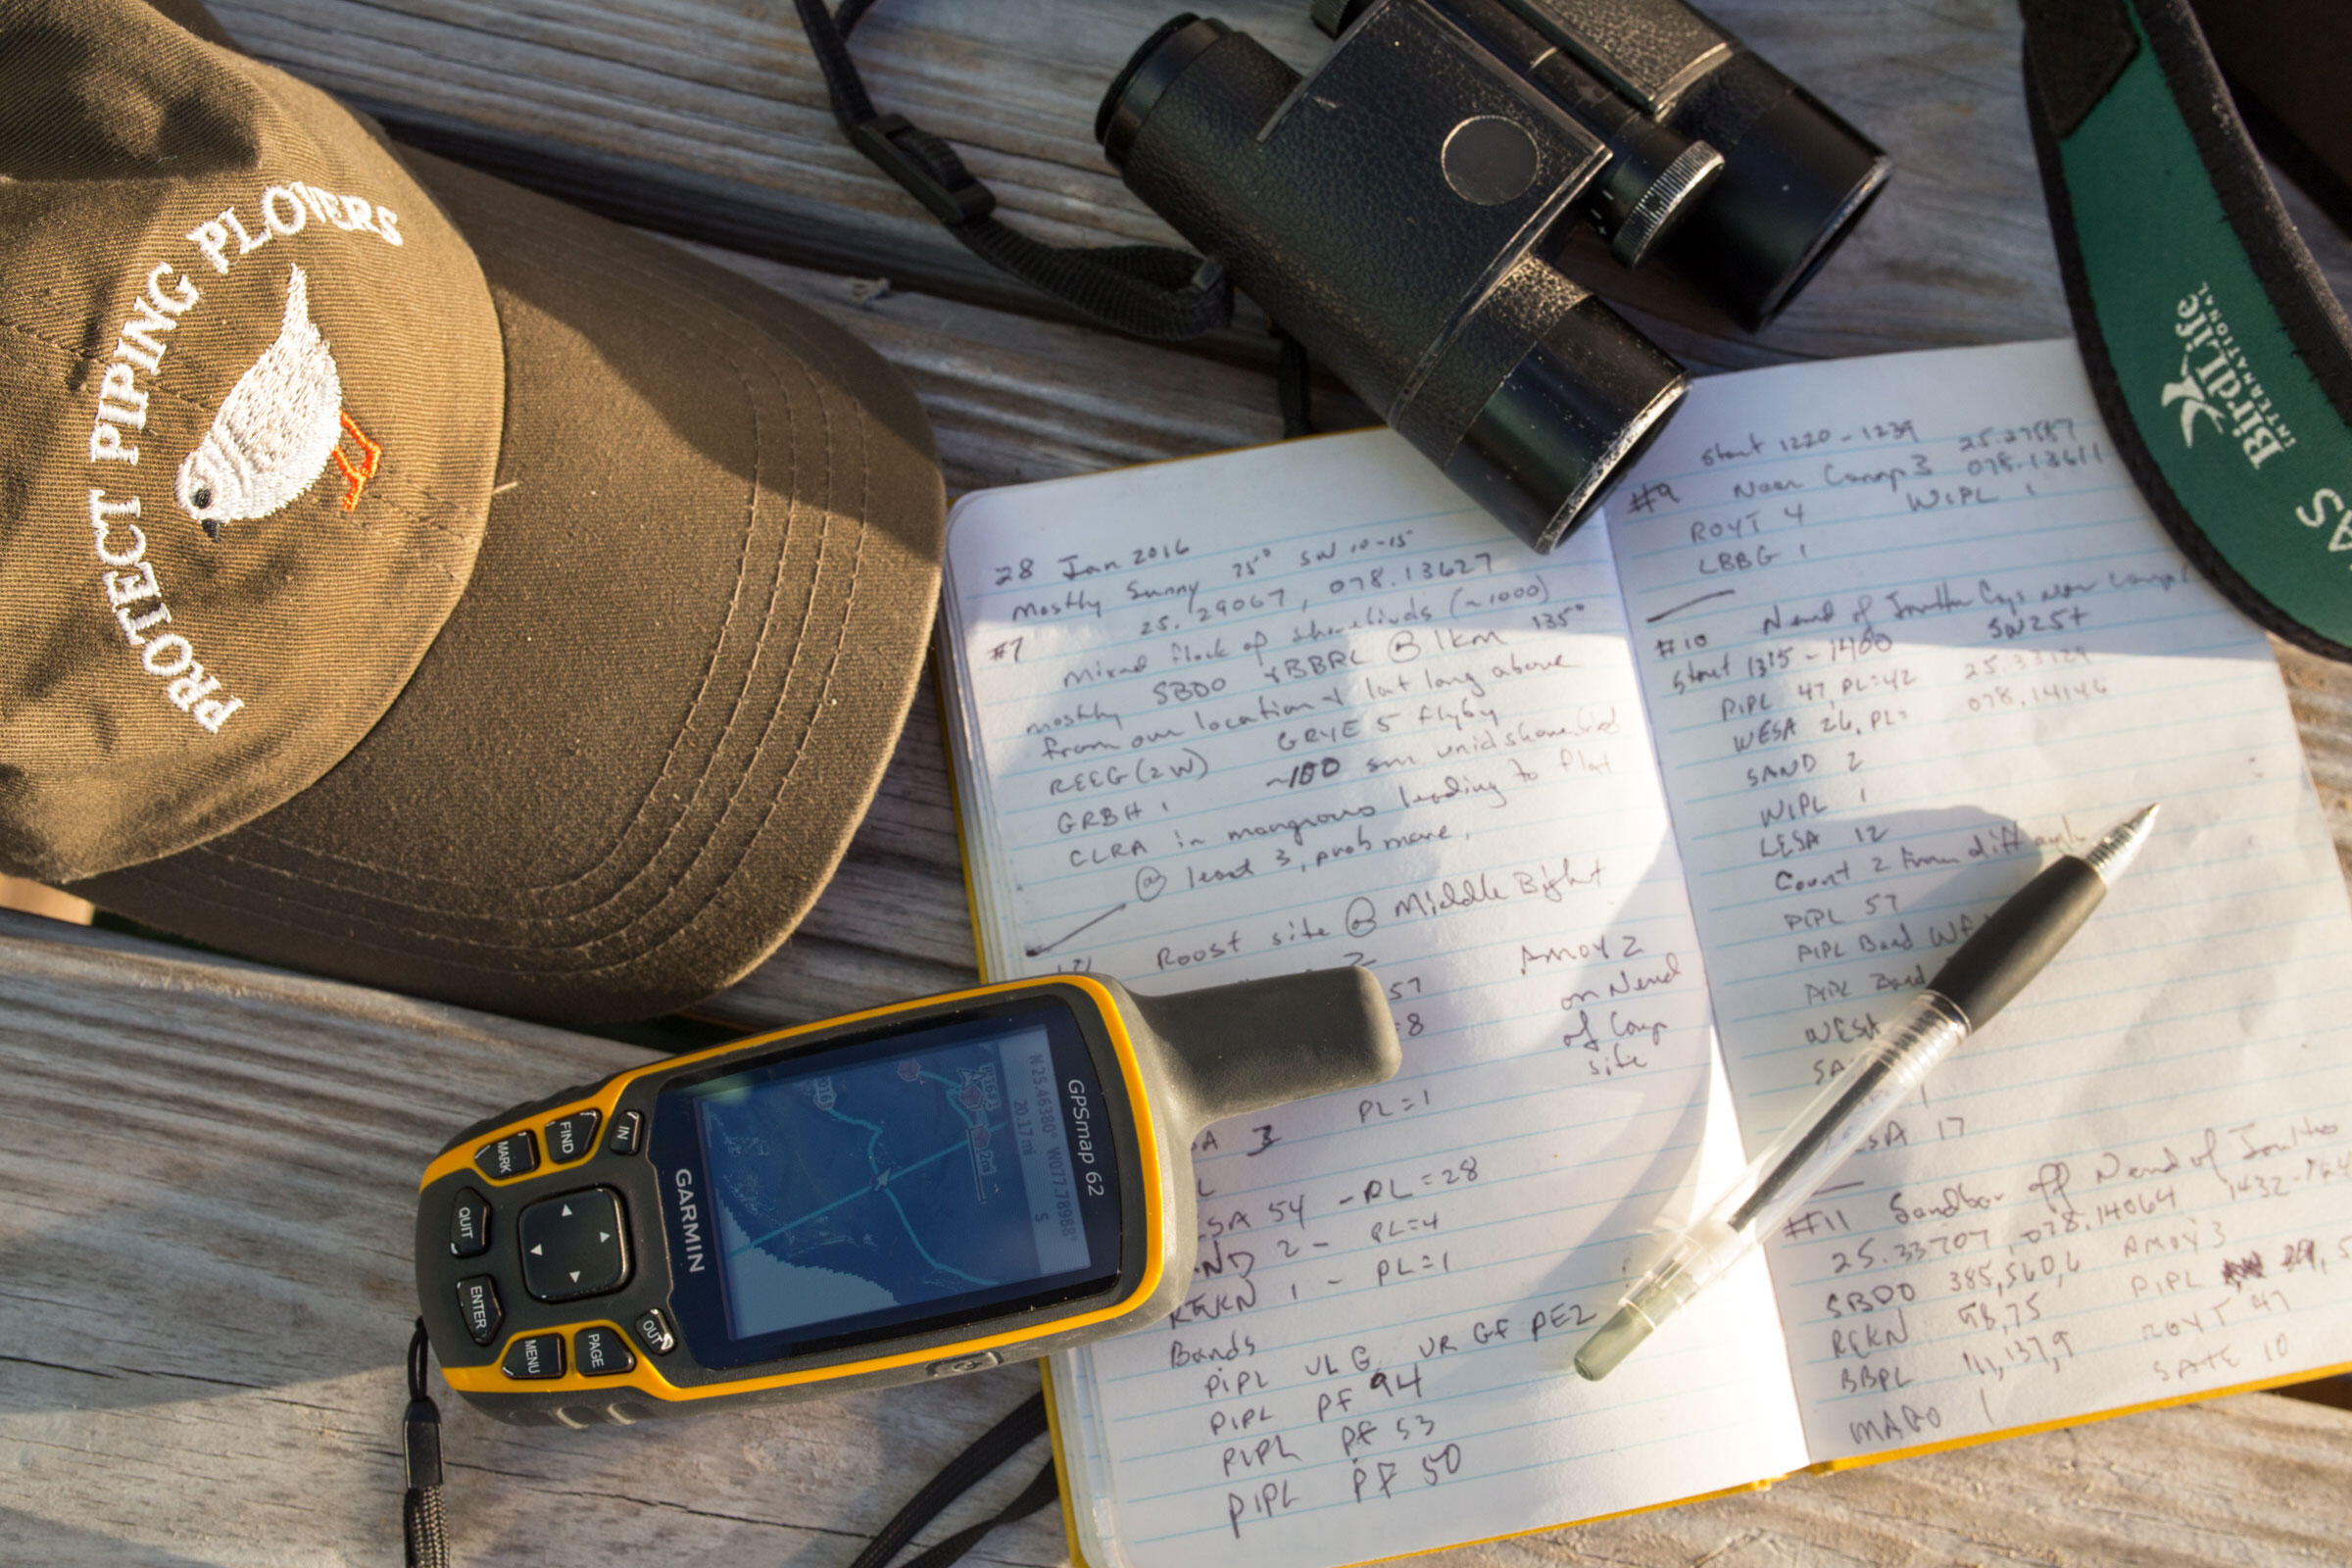 Census tools:The team plans their route and stops based on GPS coordinates from prior successful surveys. Hats (plover-themed please!) and binoculars are must-haves, too. Camilla Cerea/Audubon